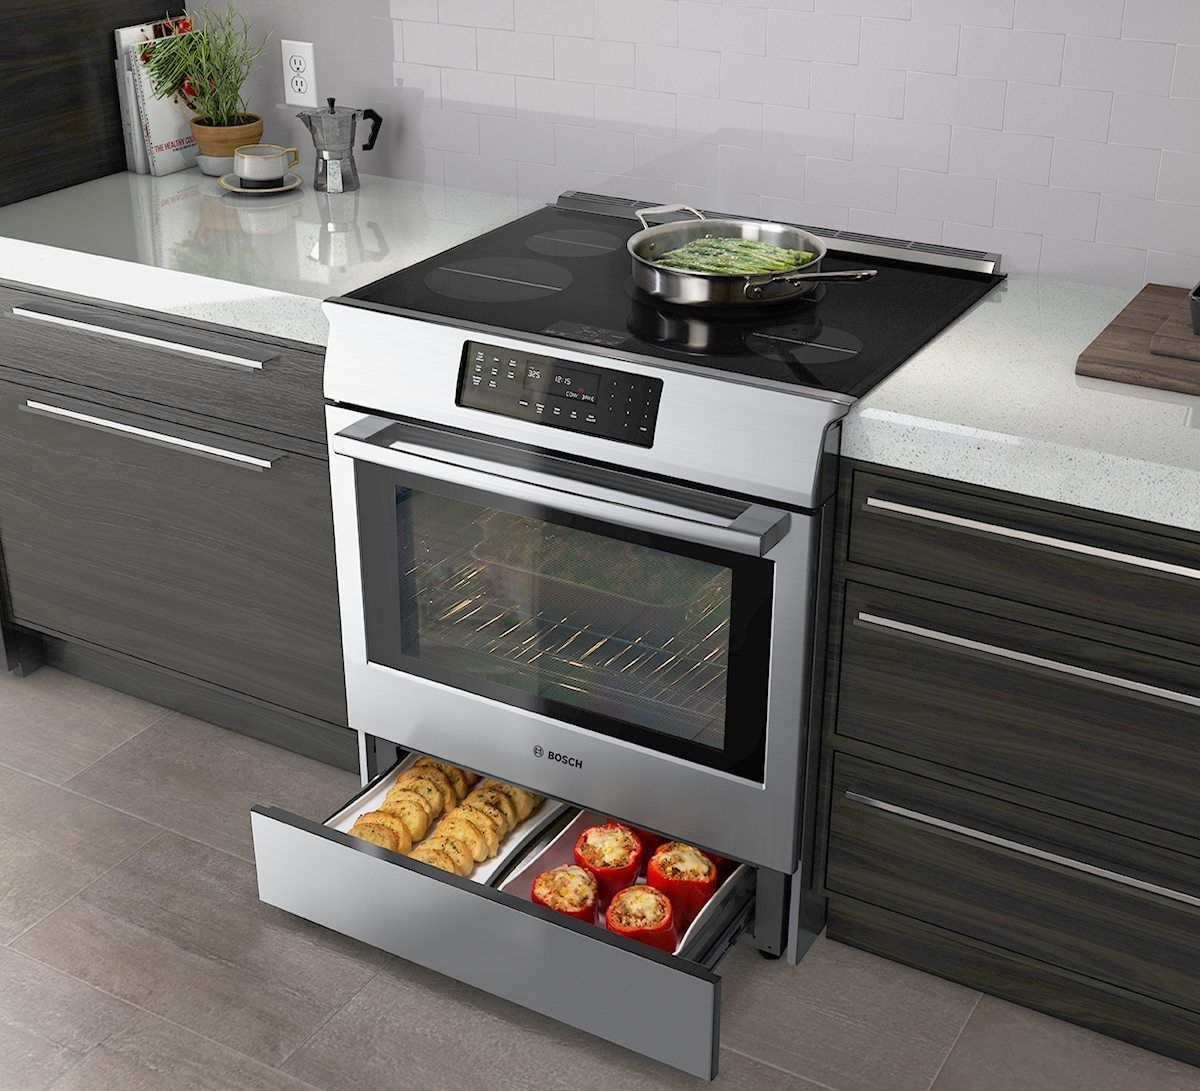 The Bosch Warming Drawer Keeps Side Dishes Warm As You Put The Finishing Touches On The Main Cou Outdoor Kitchen Appliances Outdoor Kitchen Countertops Kitchen